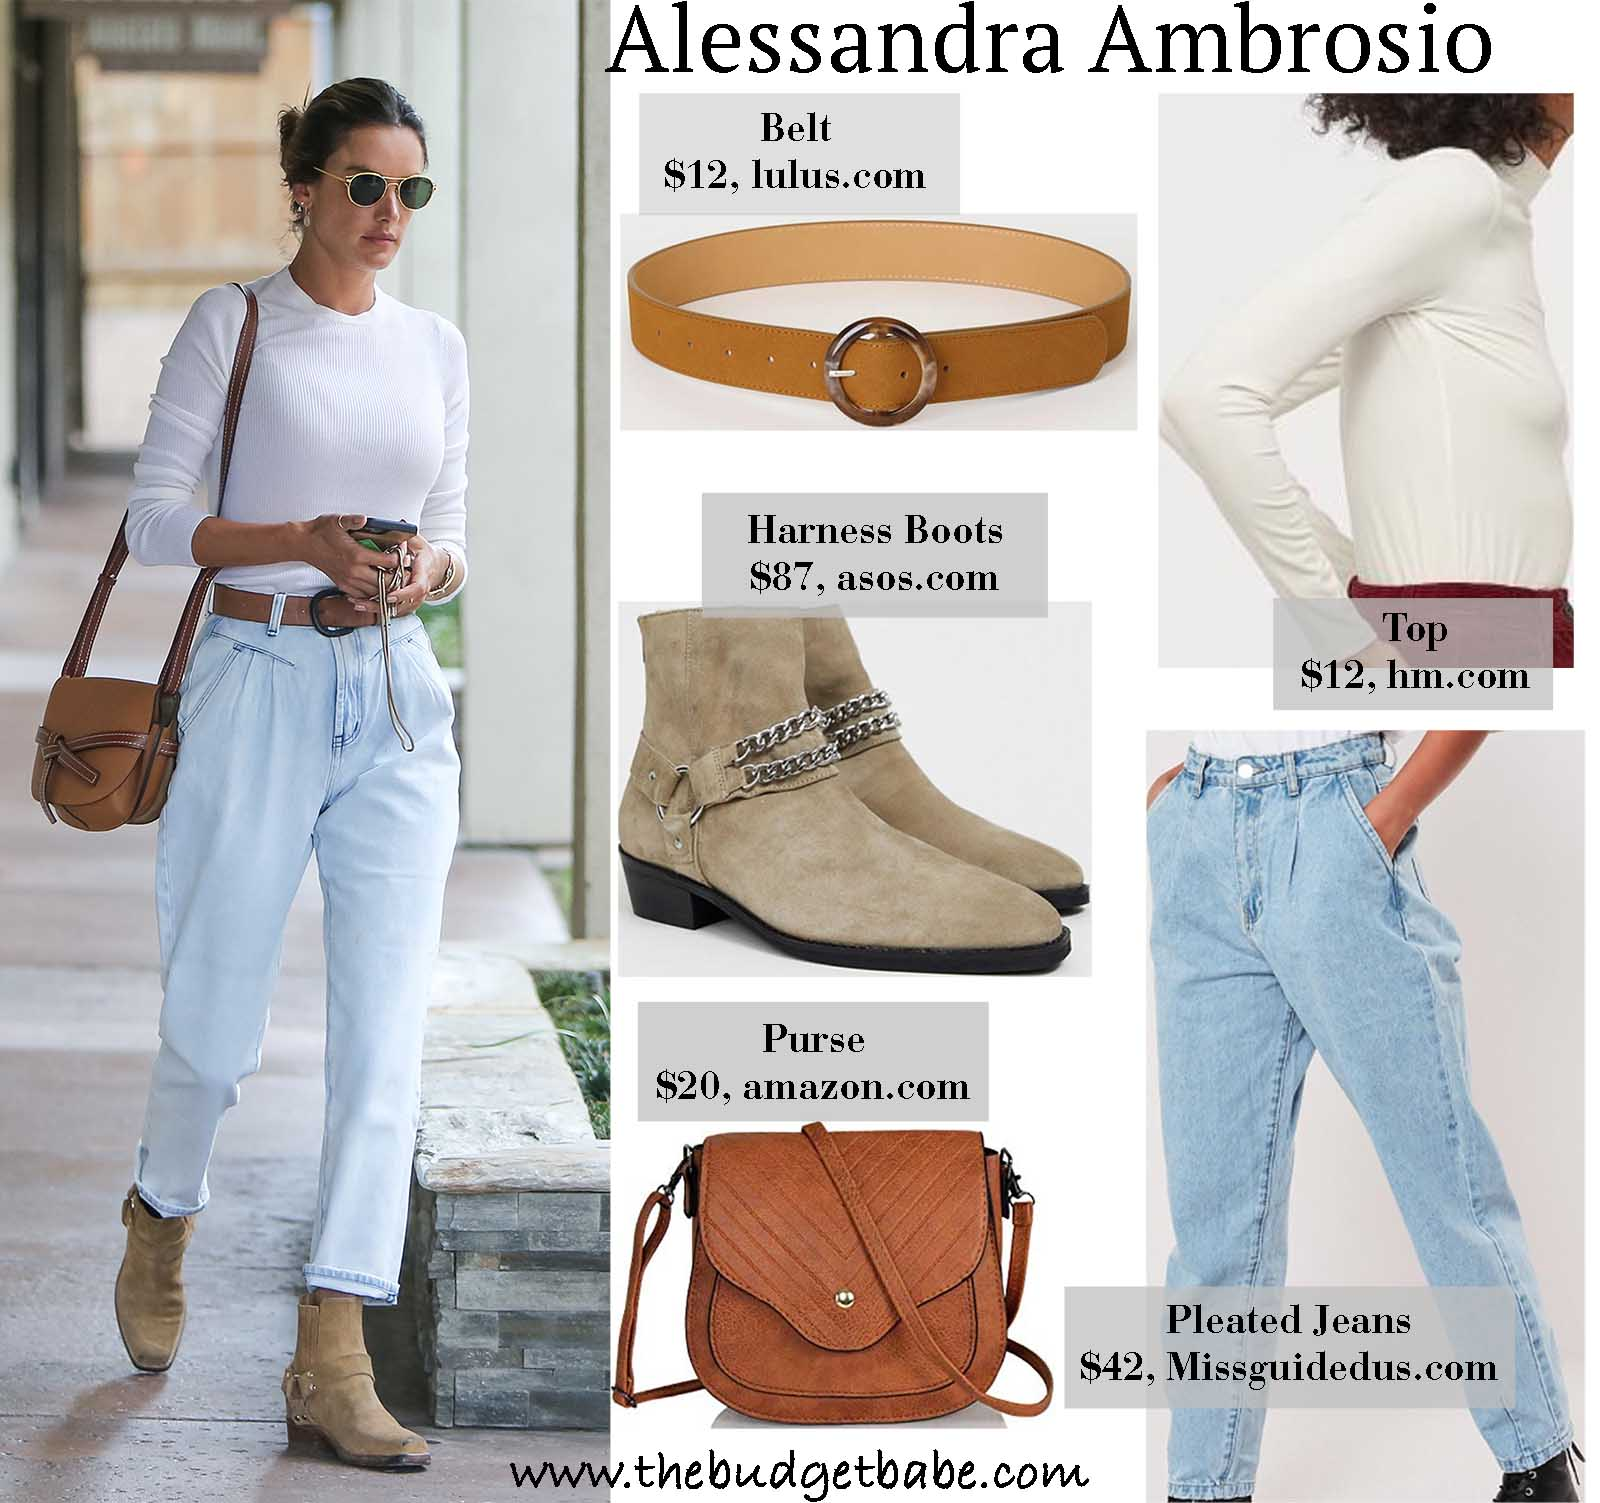 Alessandra's trendy denim is on our must-have list!